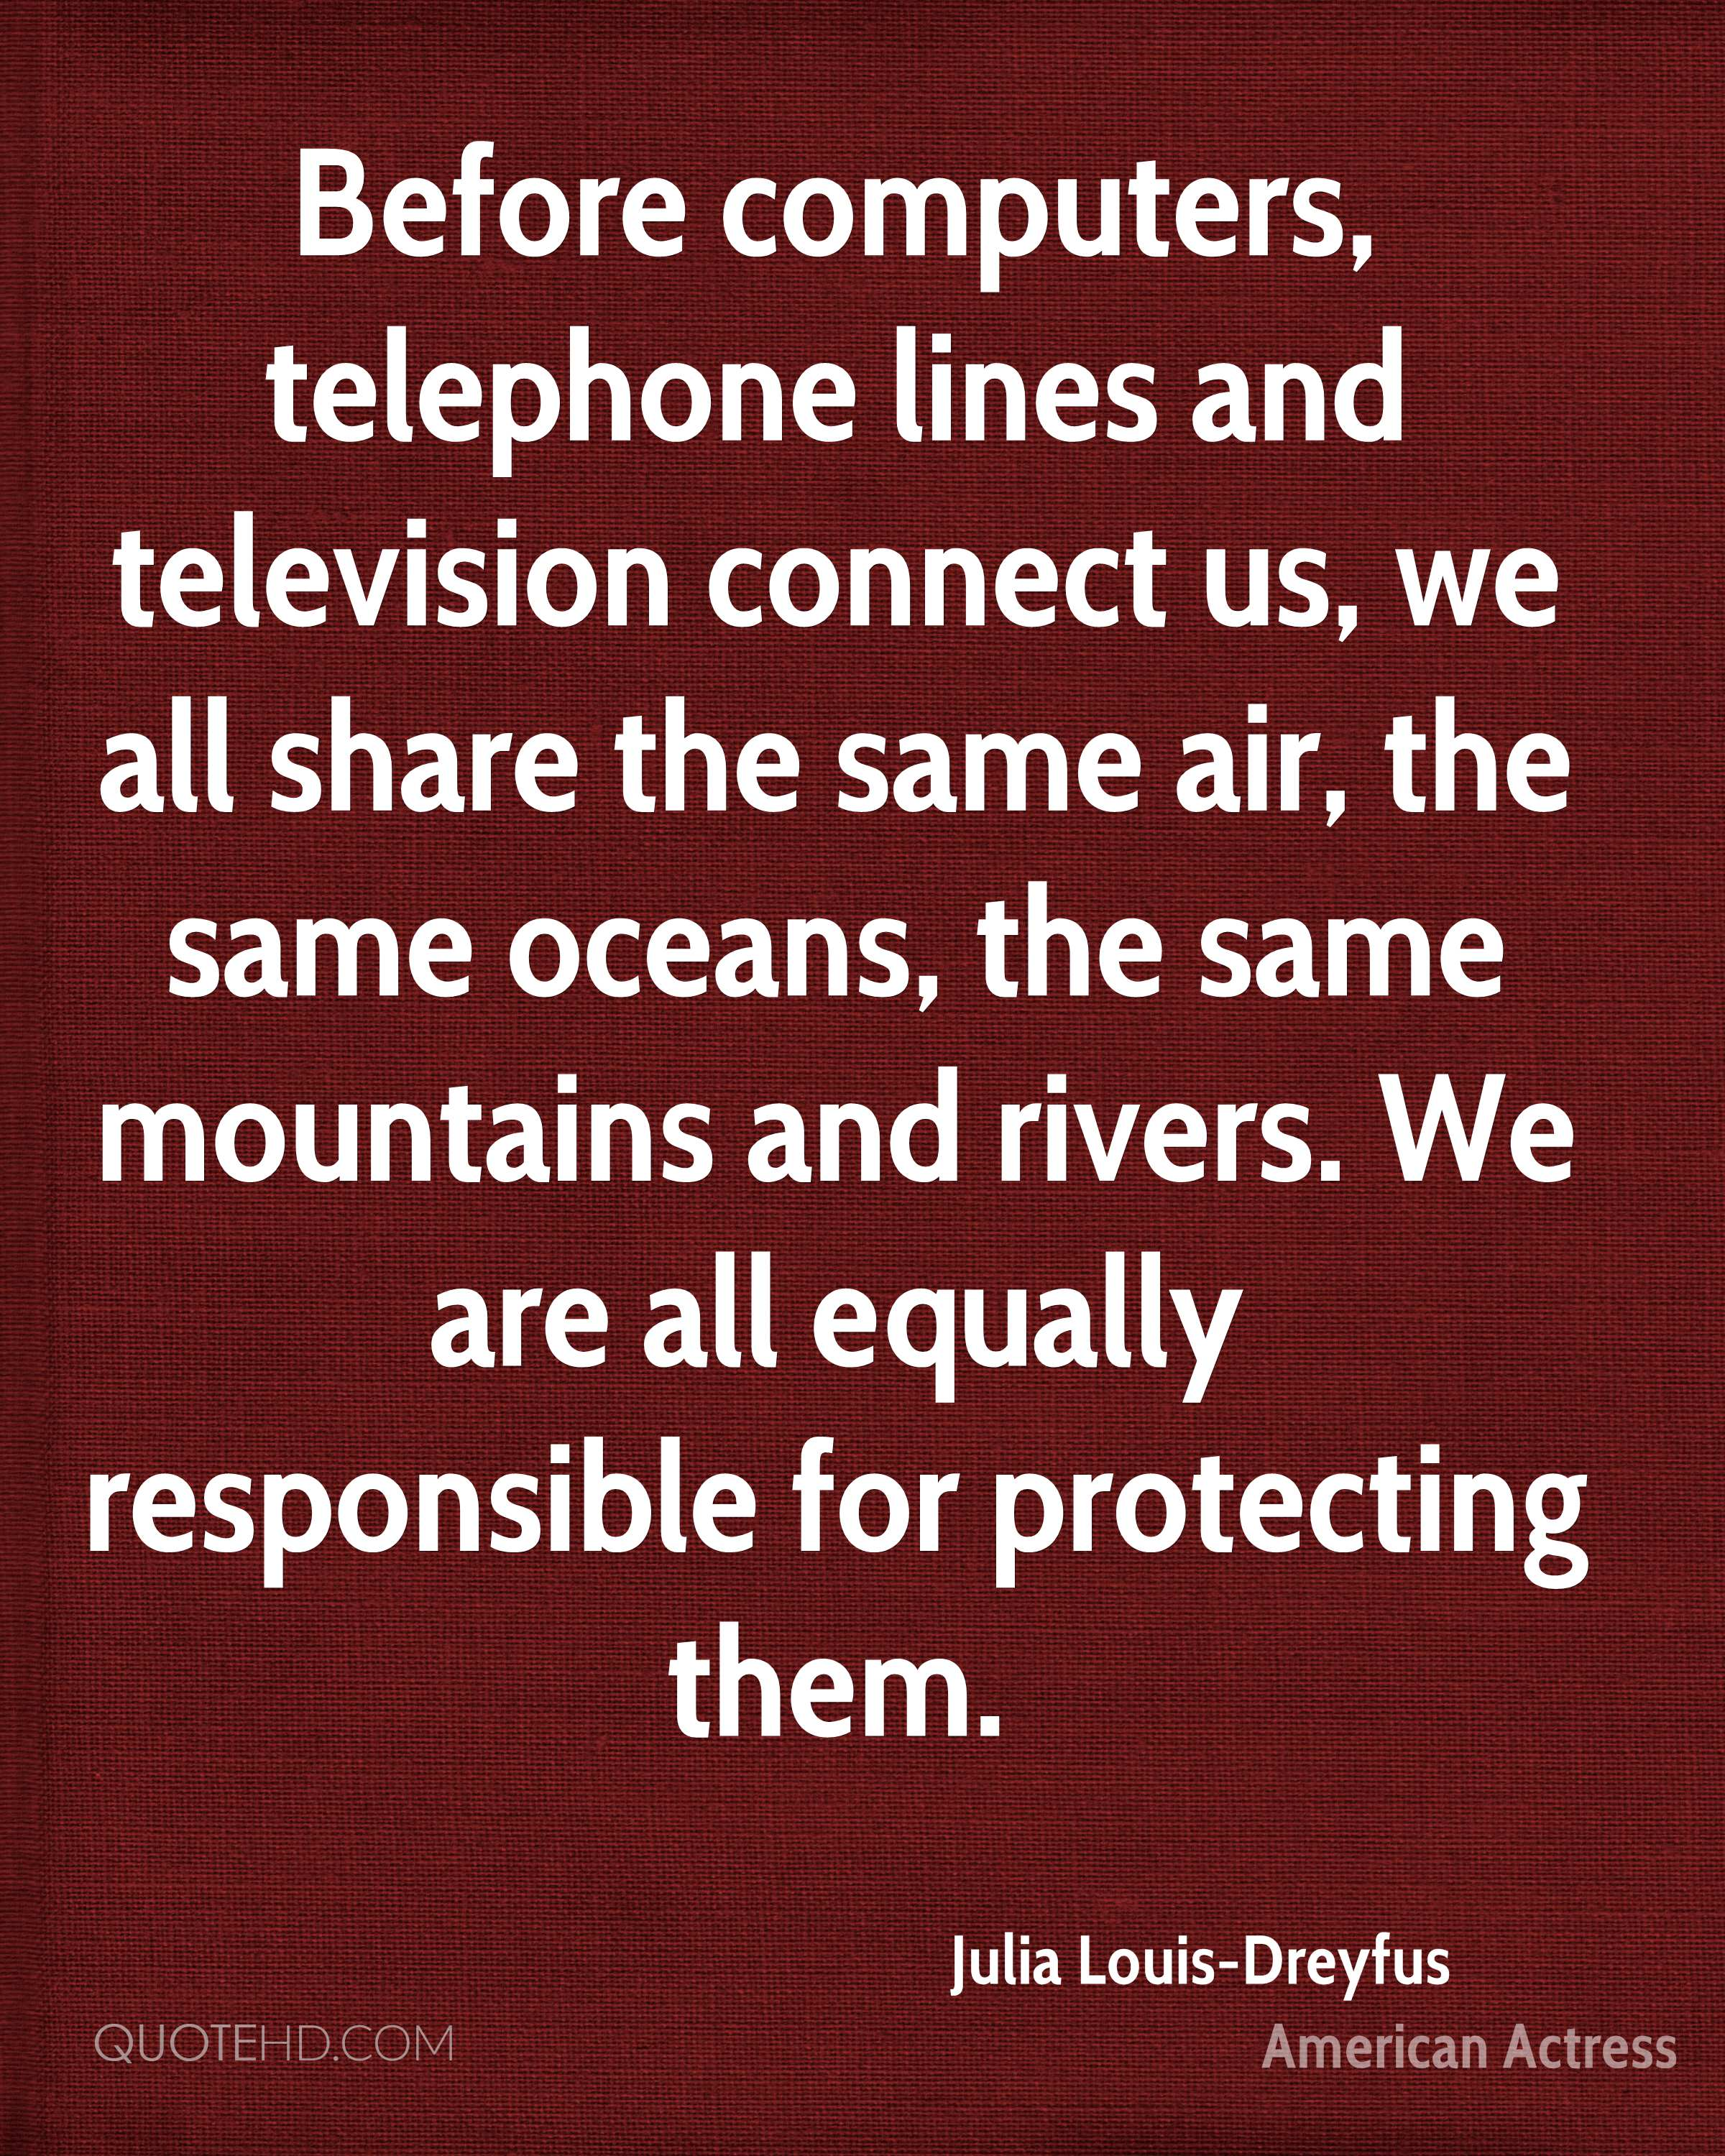 Before computers, telephone lines and television connect us, we all share the same air, the same oceans, the same mountains and rivers. We are all equally responsible for protecting them.